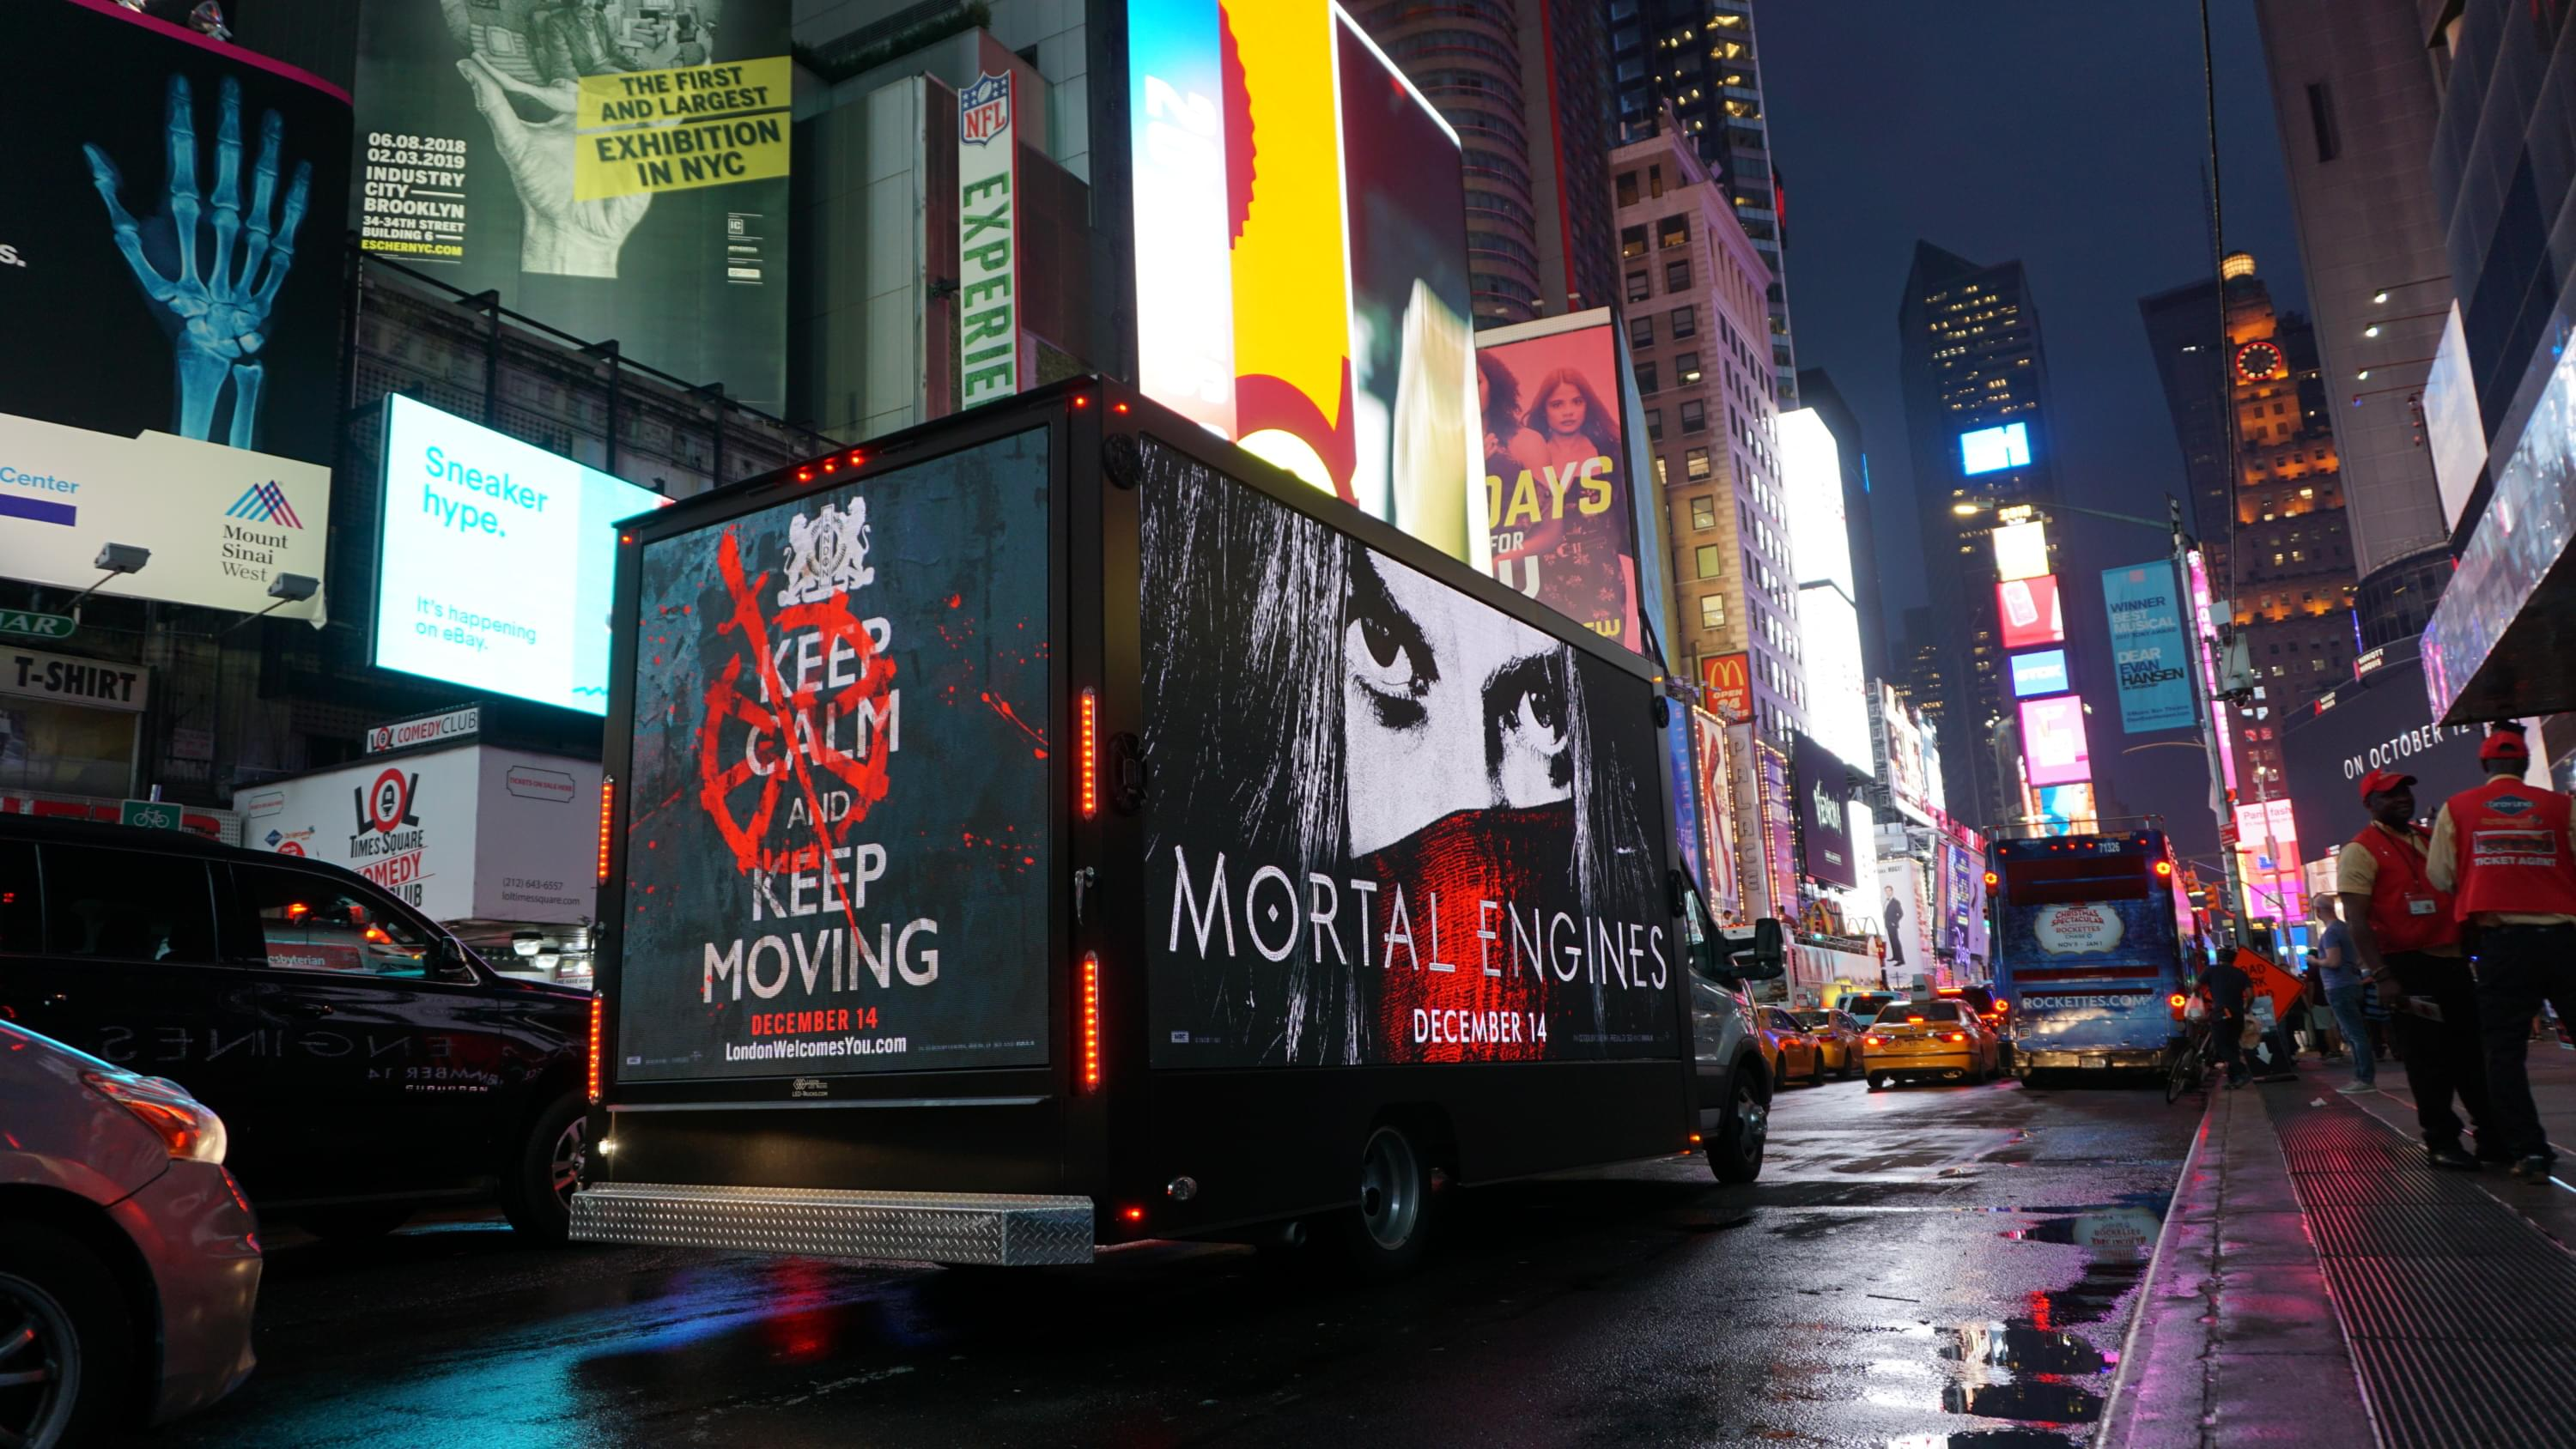 LED Mobile Billboard for Mortal Engines in New York City Times Square